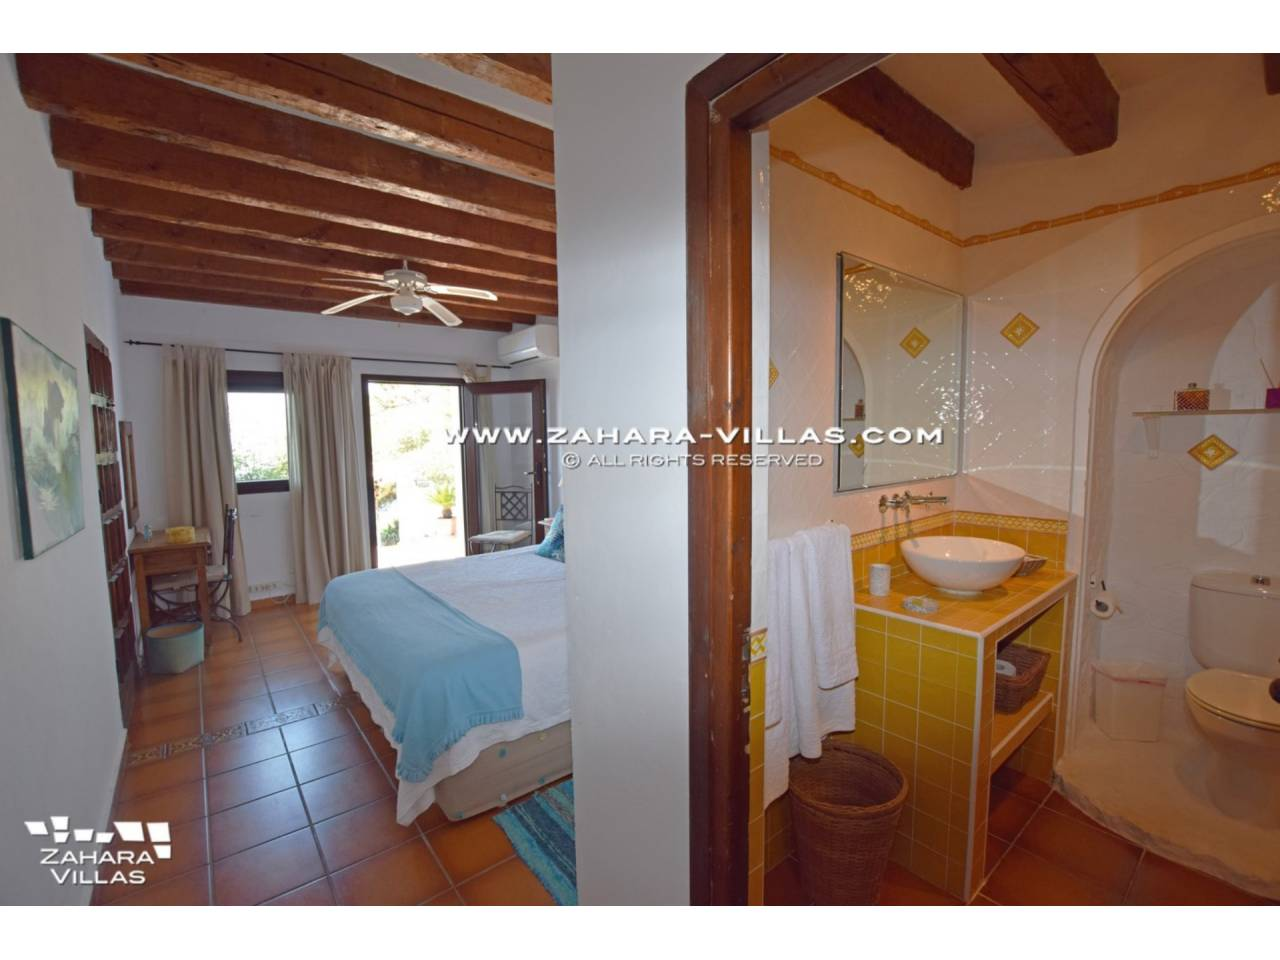 Imagen 20 de Wonderful Villa for sale in Atlanterra-Zahara de los Atunes